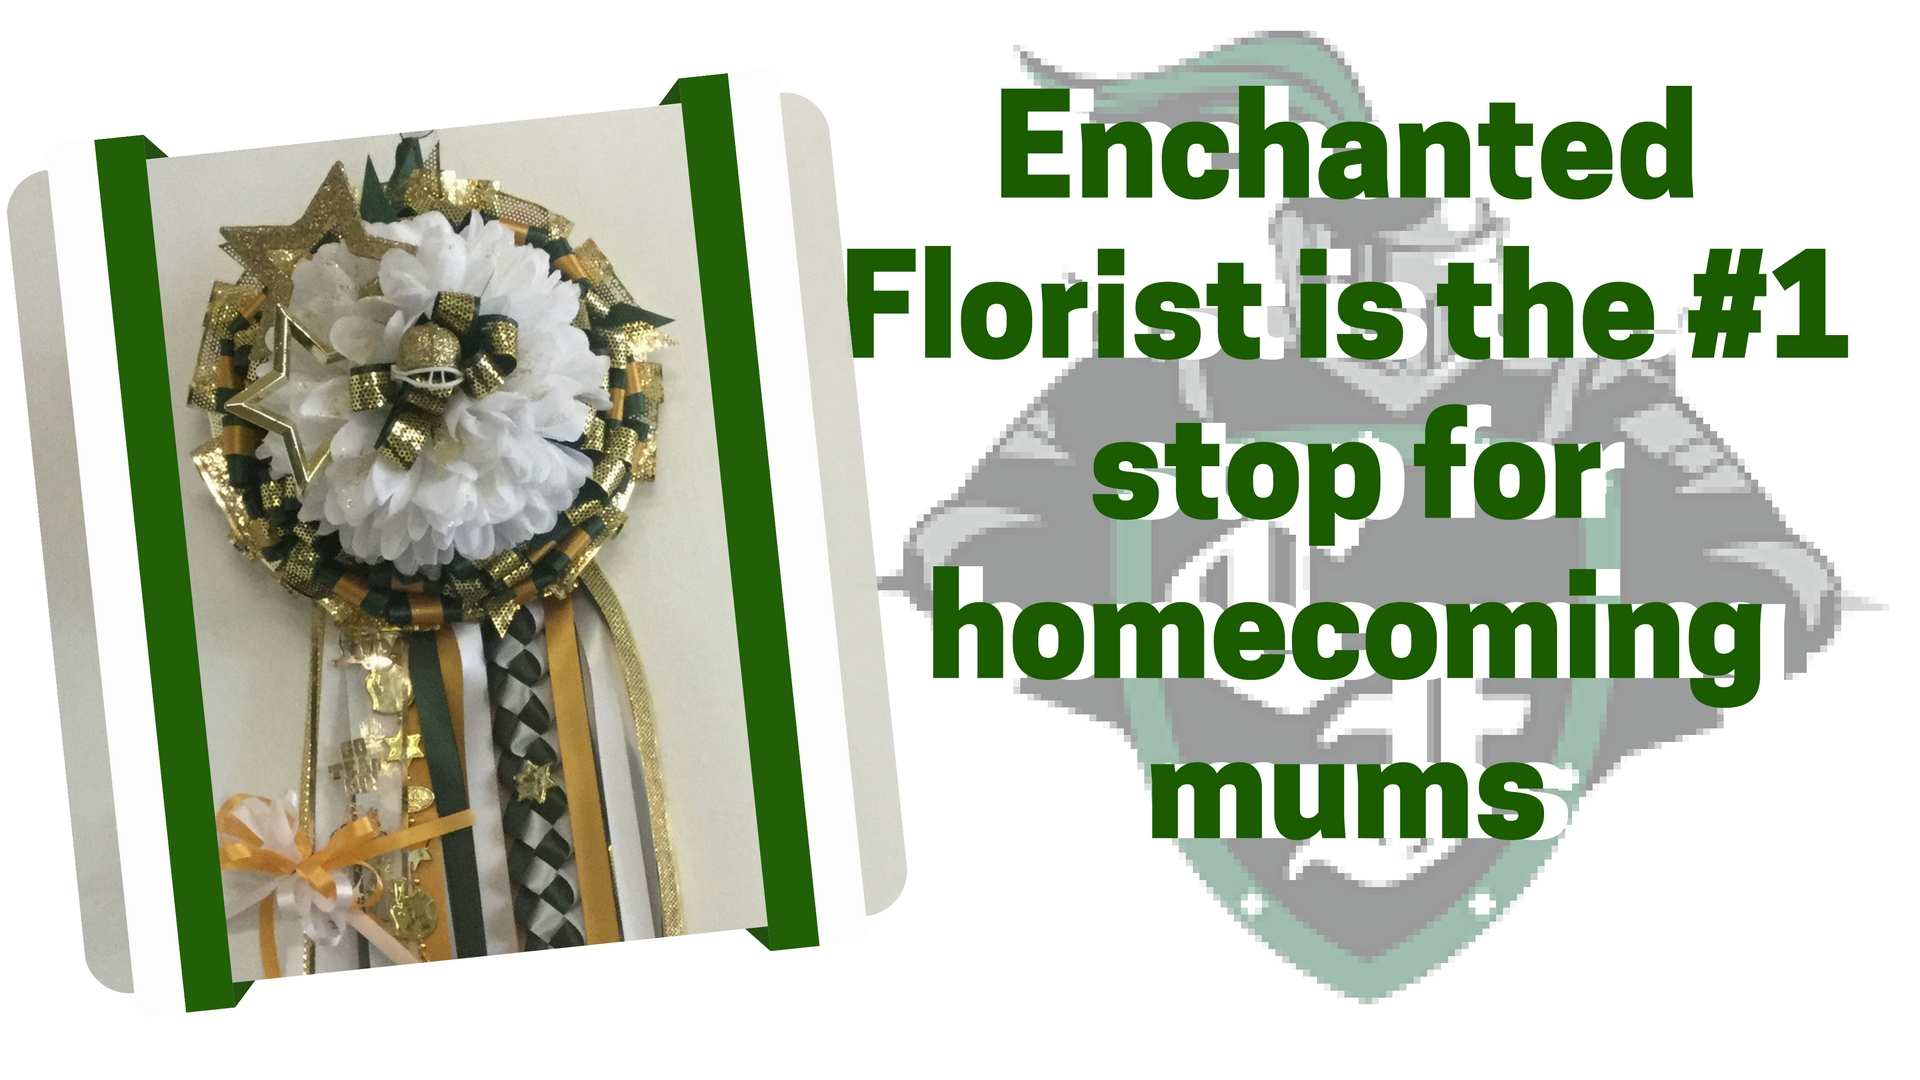 homecoming mums for clear falls high school